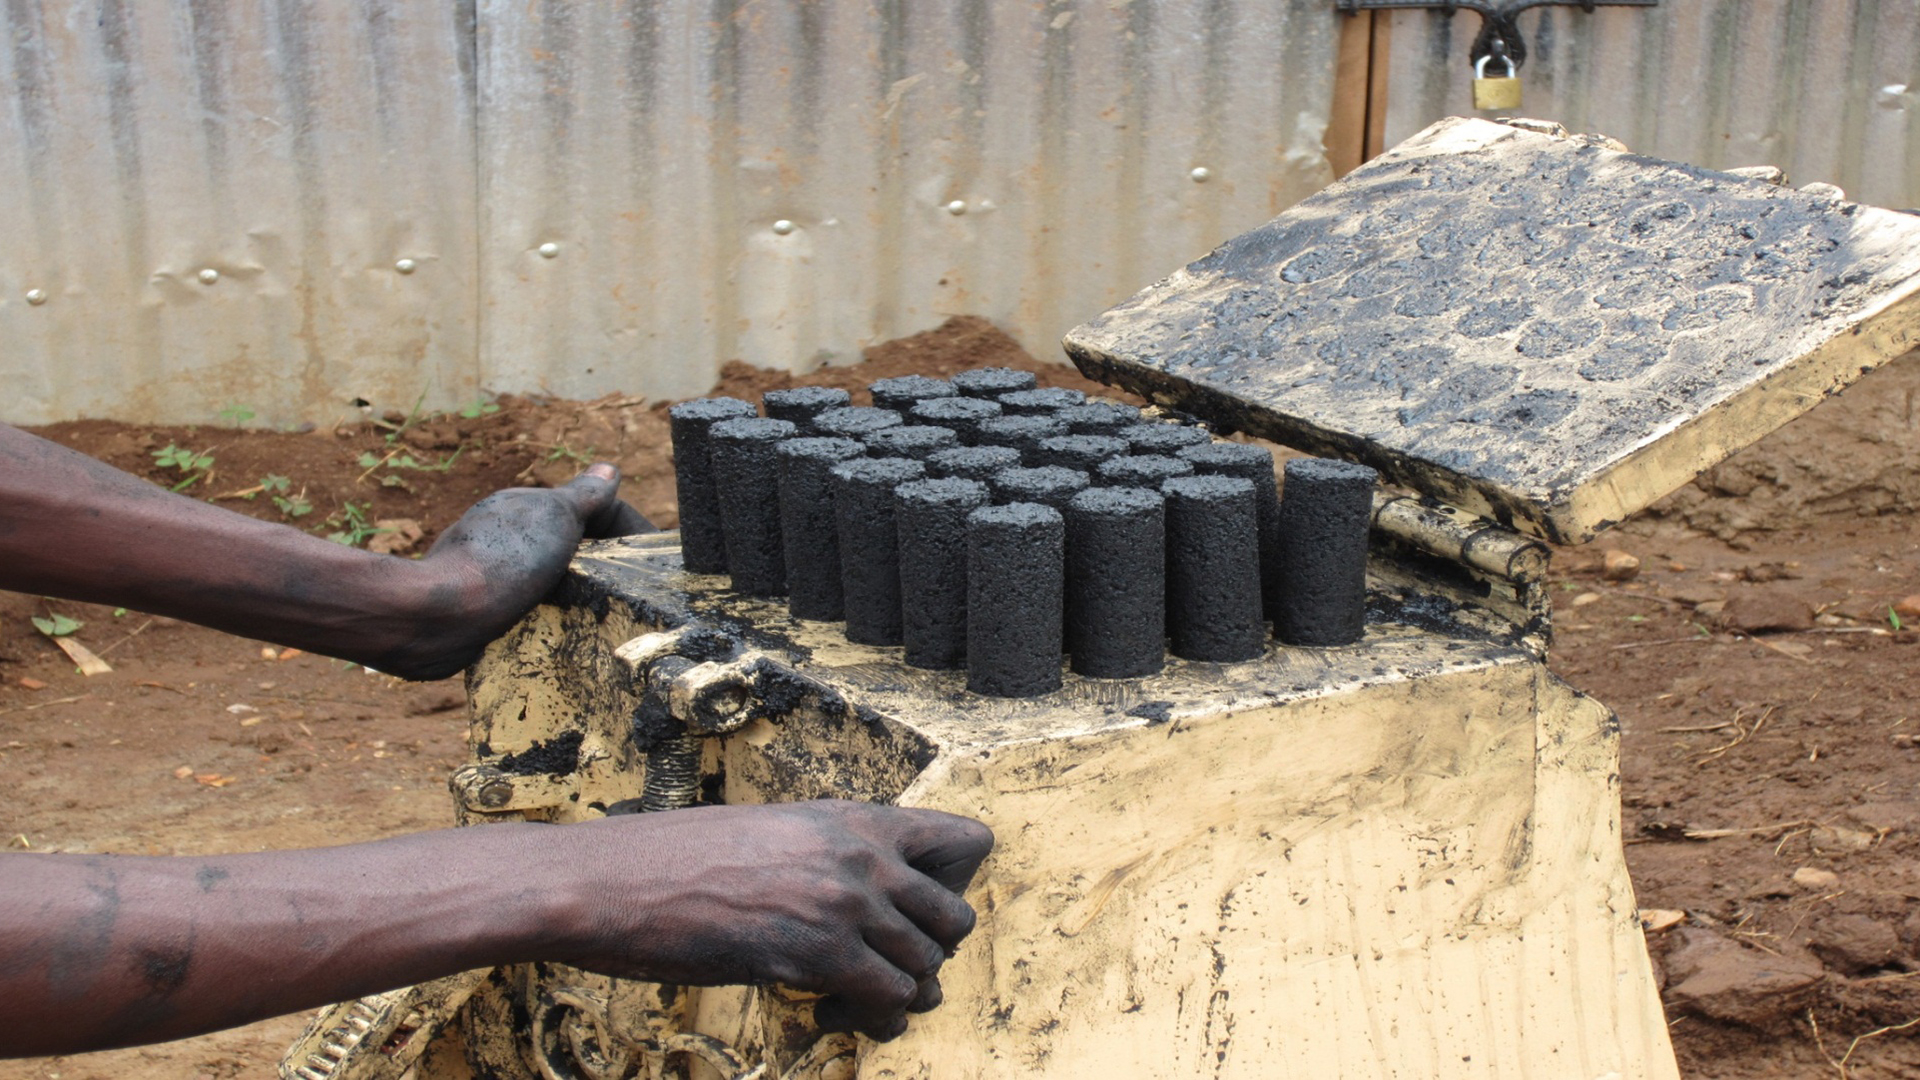 Sanga Moses: Using Waste to Fuel Africa